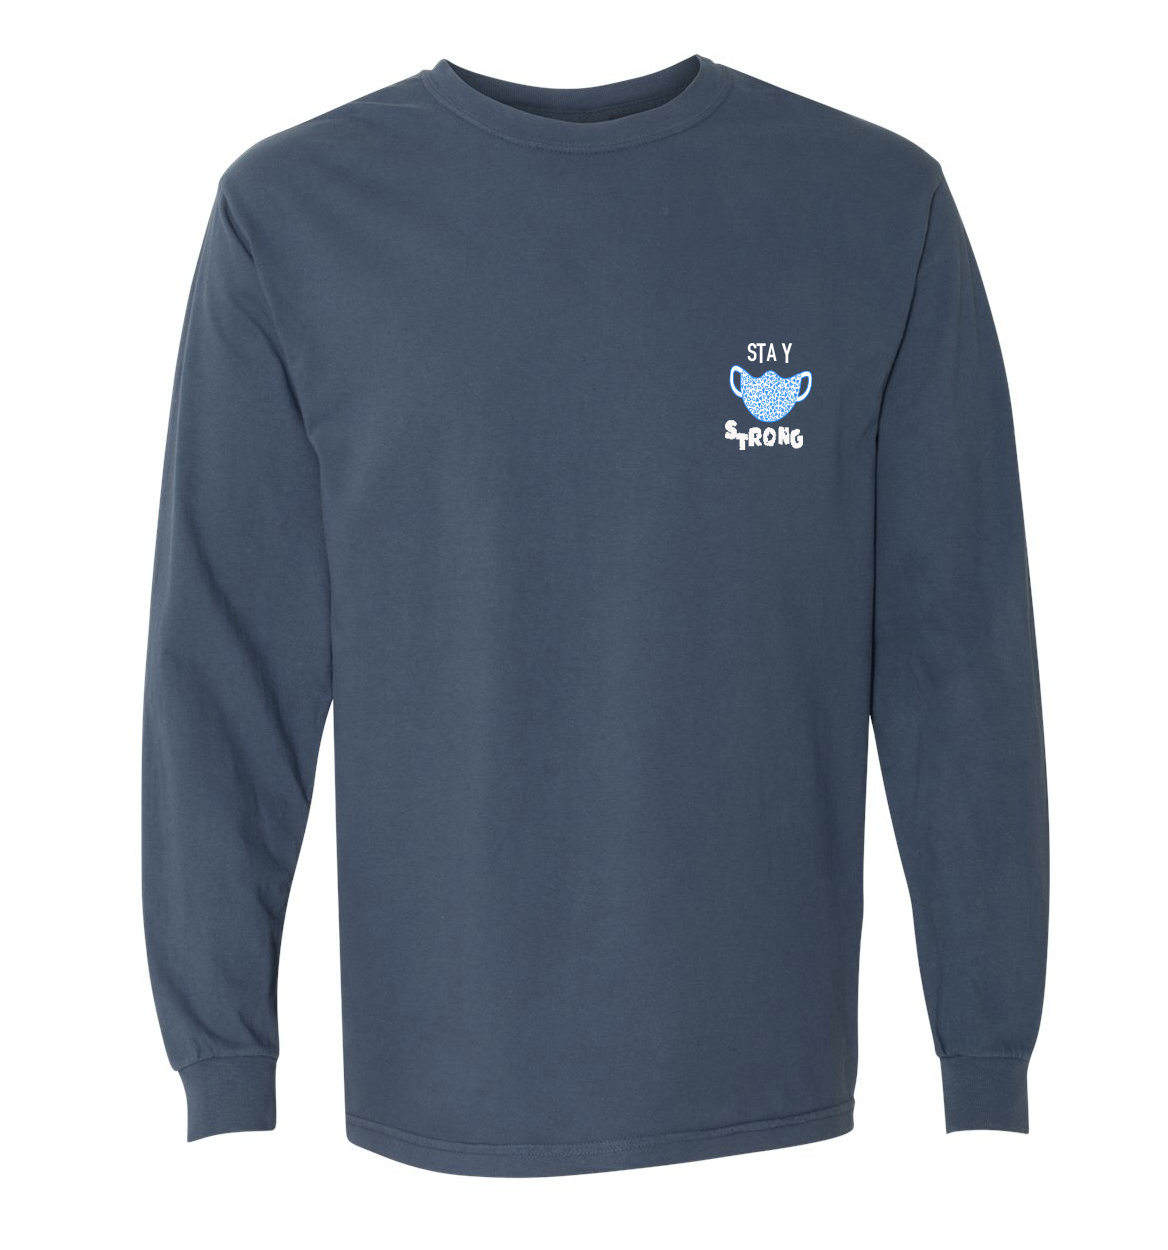 Stay Strong - CC Long Sleeve